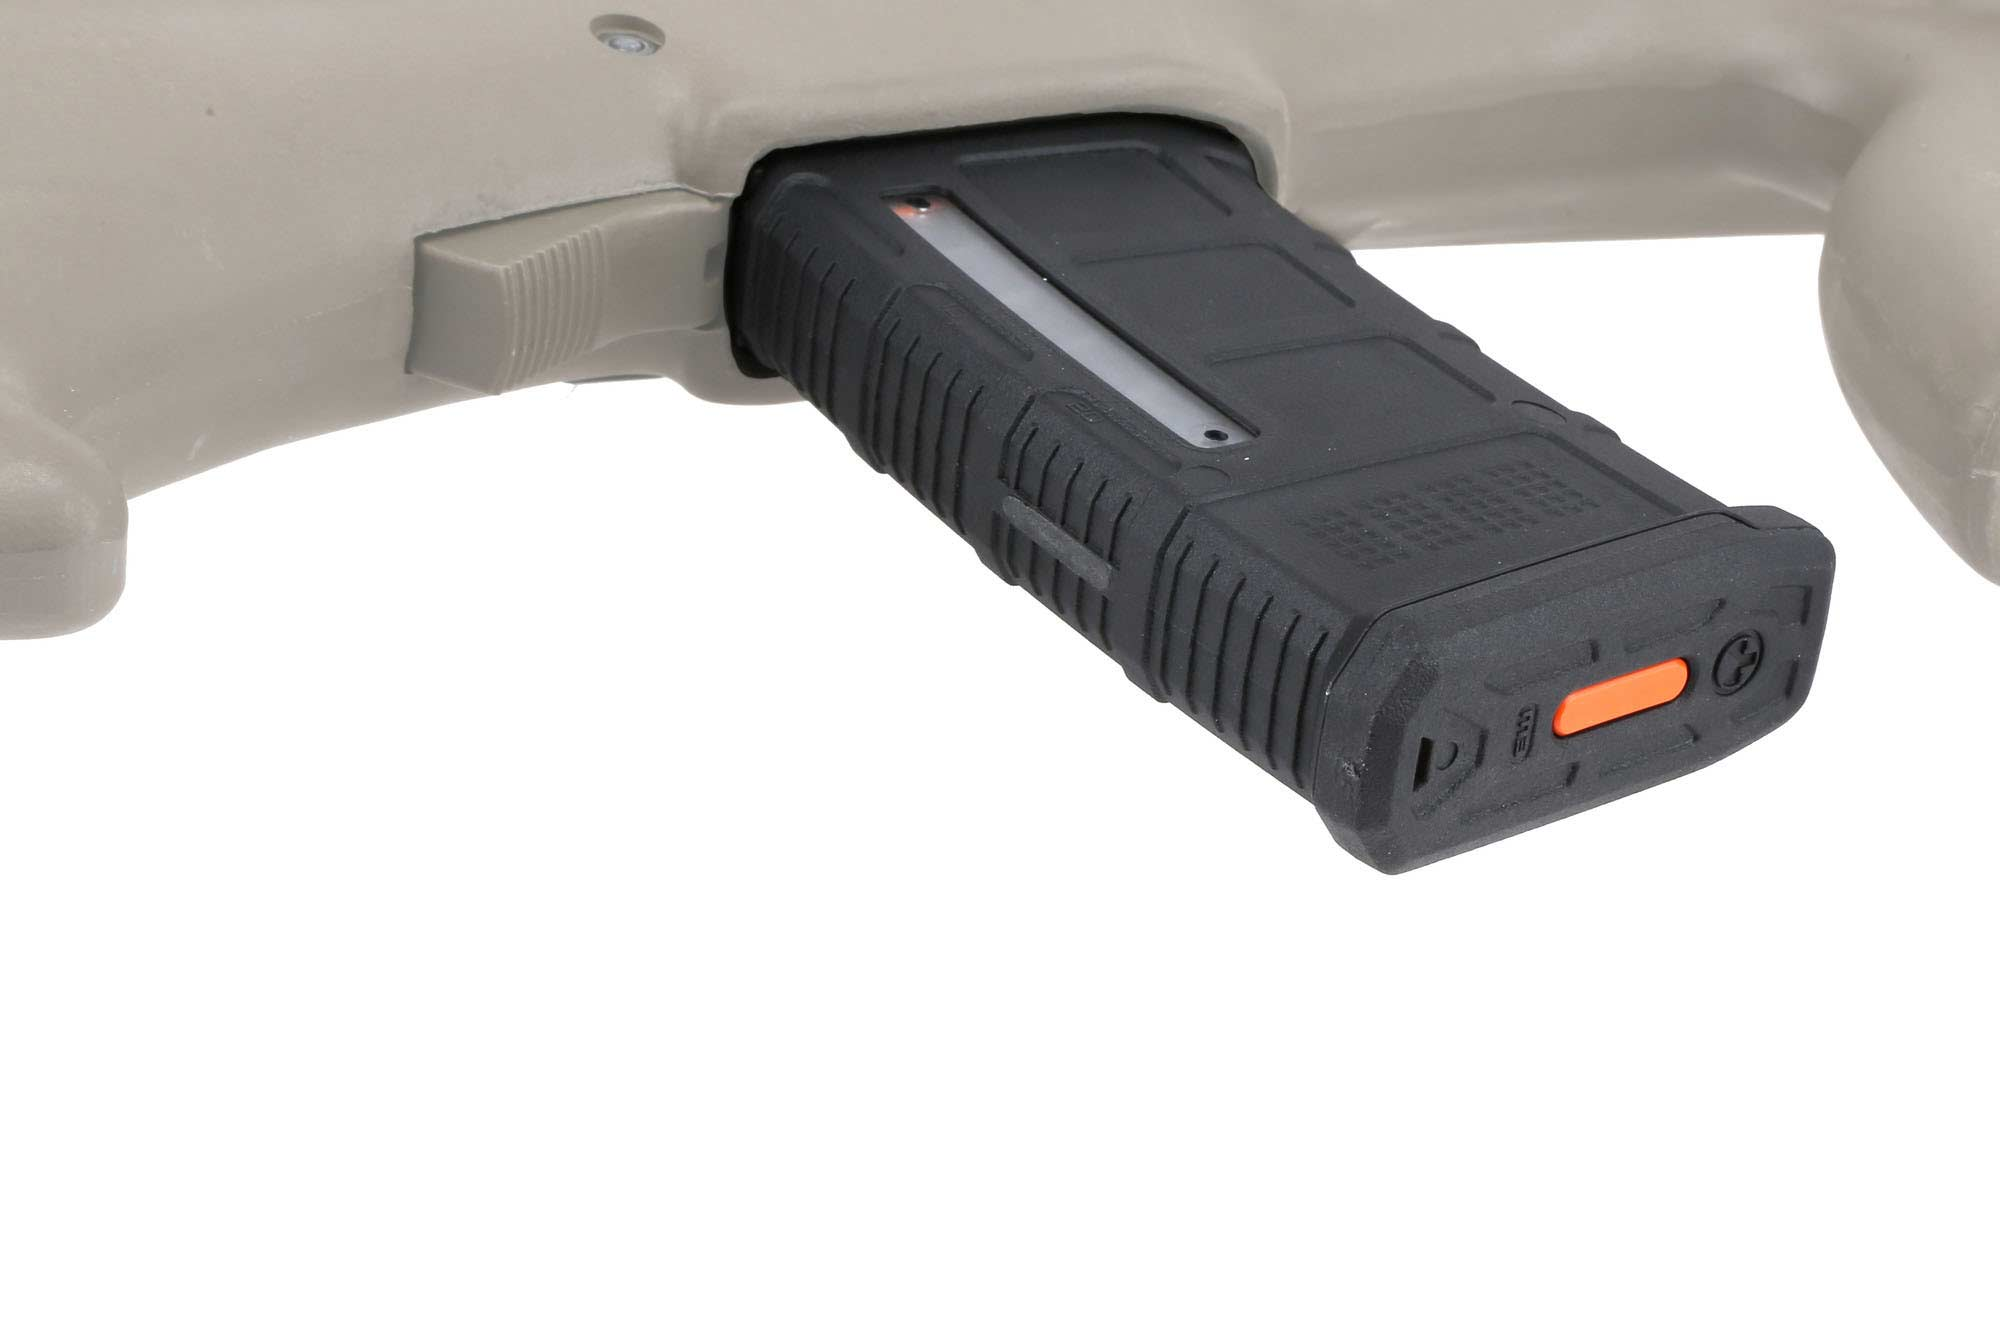 The Magpul PMAG Steyr AUG magazine has an easily removeable base plate